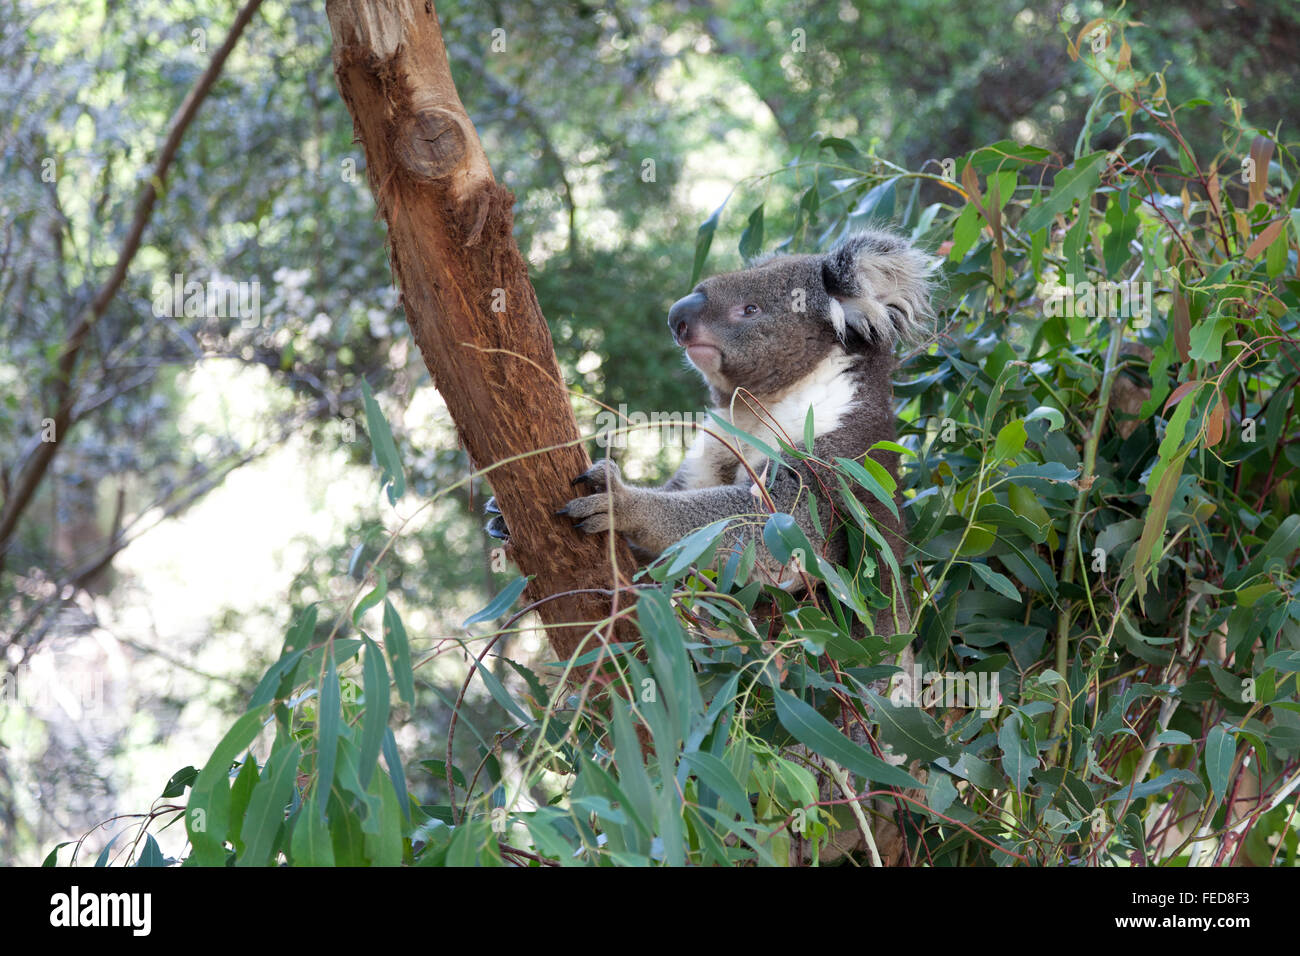 Koala on a tree trunk in Queensland, Australia - Stock Image